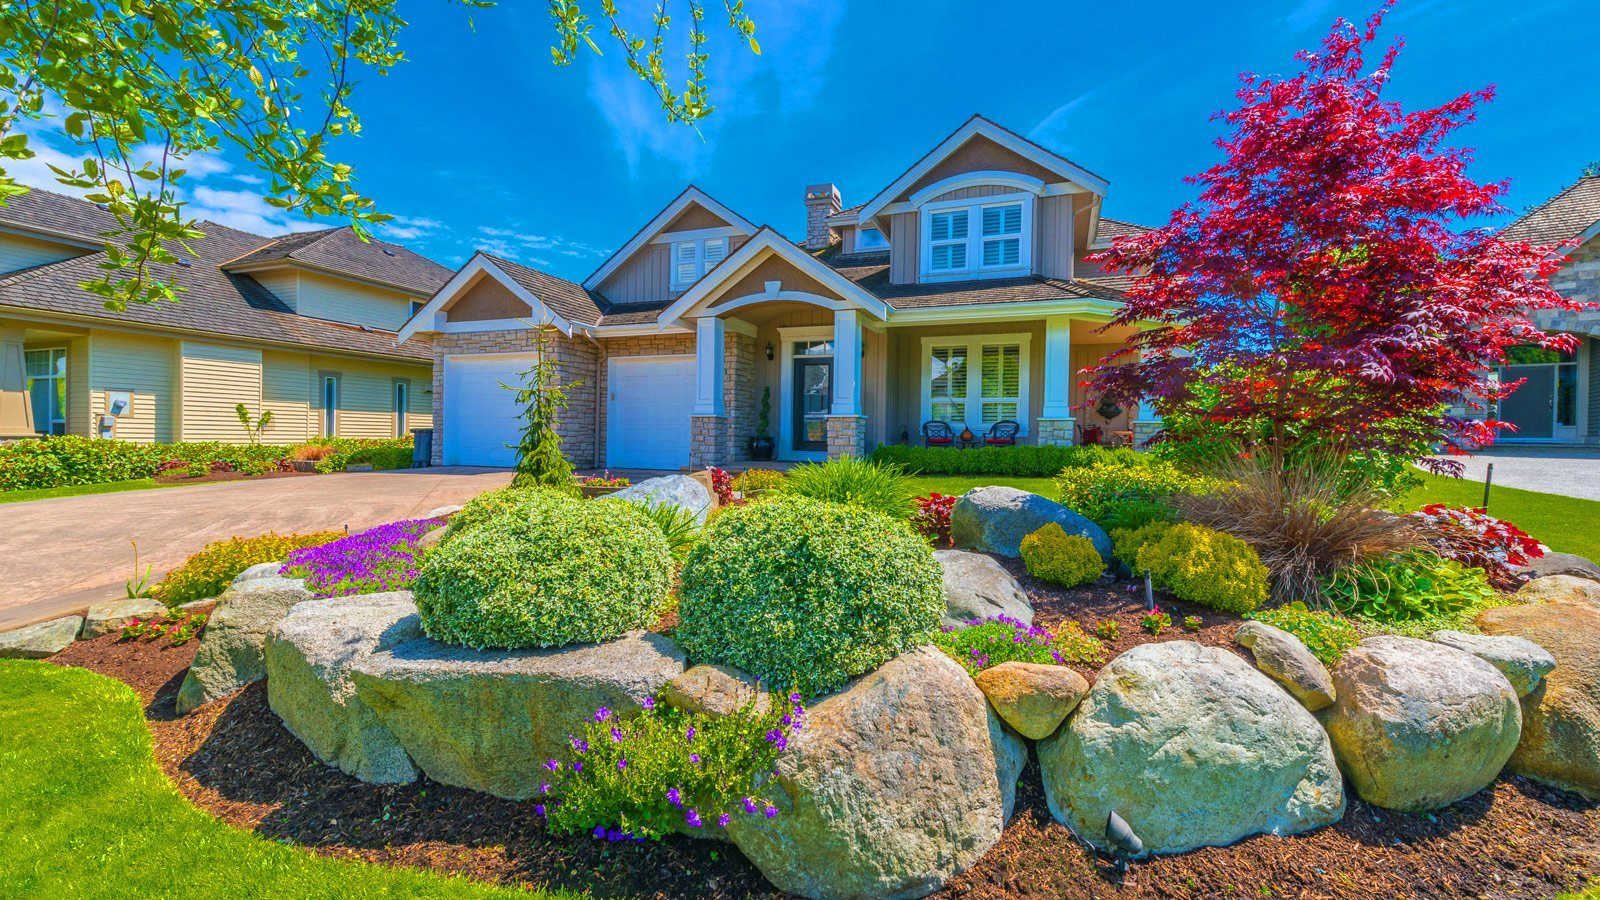 American Landscape And Lawn Care Topeka Ks